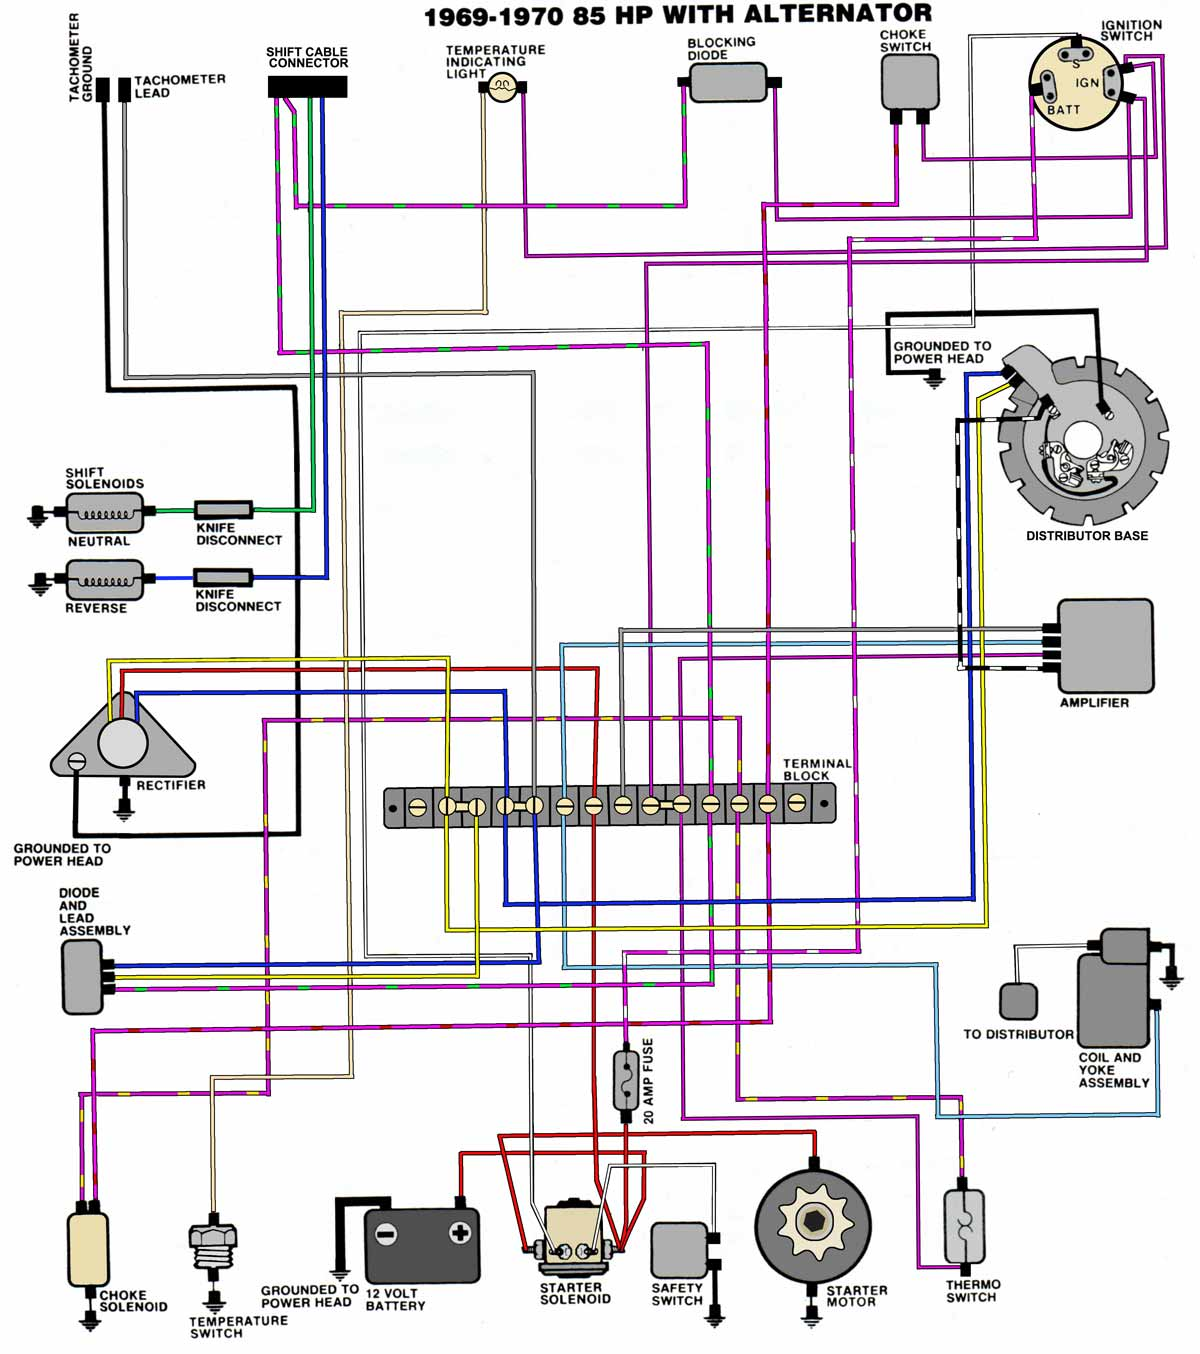 [DIAGRAM_38ZD]  EVINRUDE JOHNSON Outboard Wiring Diagrams -- MASTERTECH MARINE -- | 115 Johnson Trim Motor Wiring Diagram |  | MASTERTECH MARINE